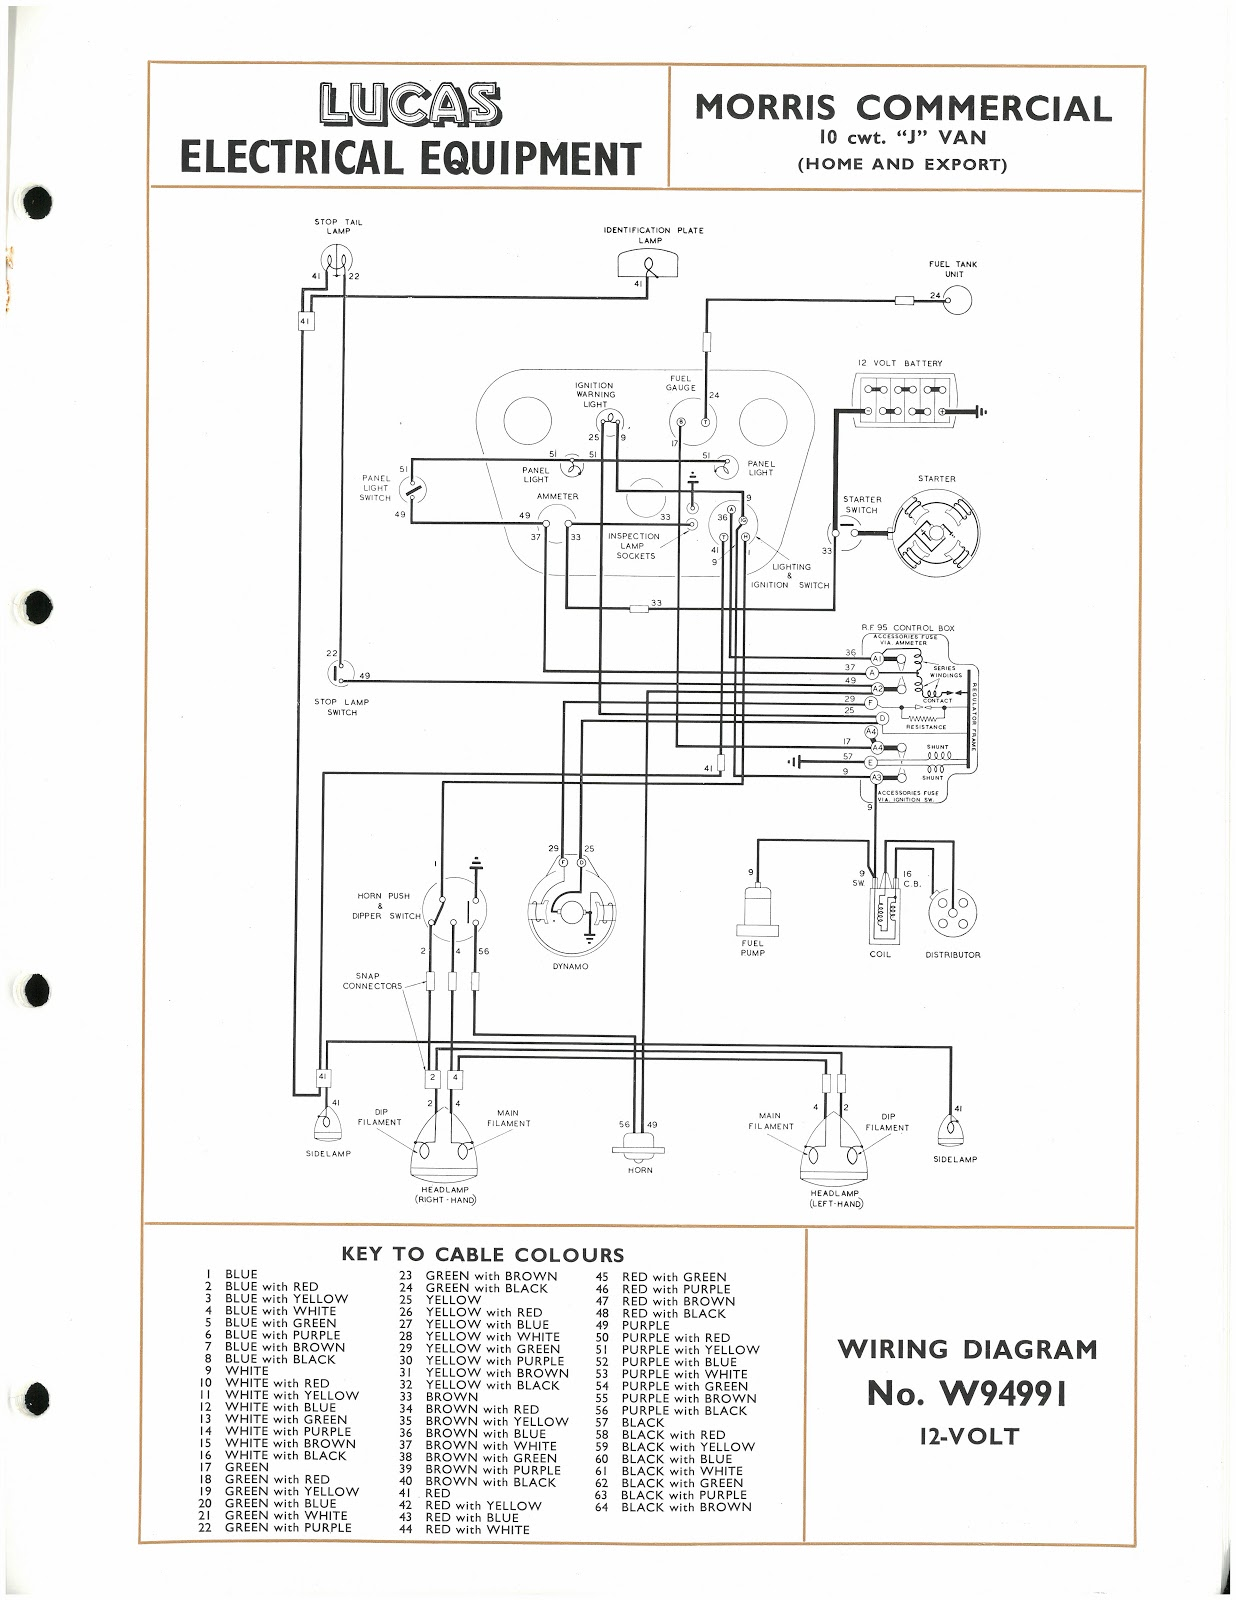 Mga Turn Signal Wiring Diagram Schematic Diagrams Kato 1957 Mg Trusted 3 Wire